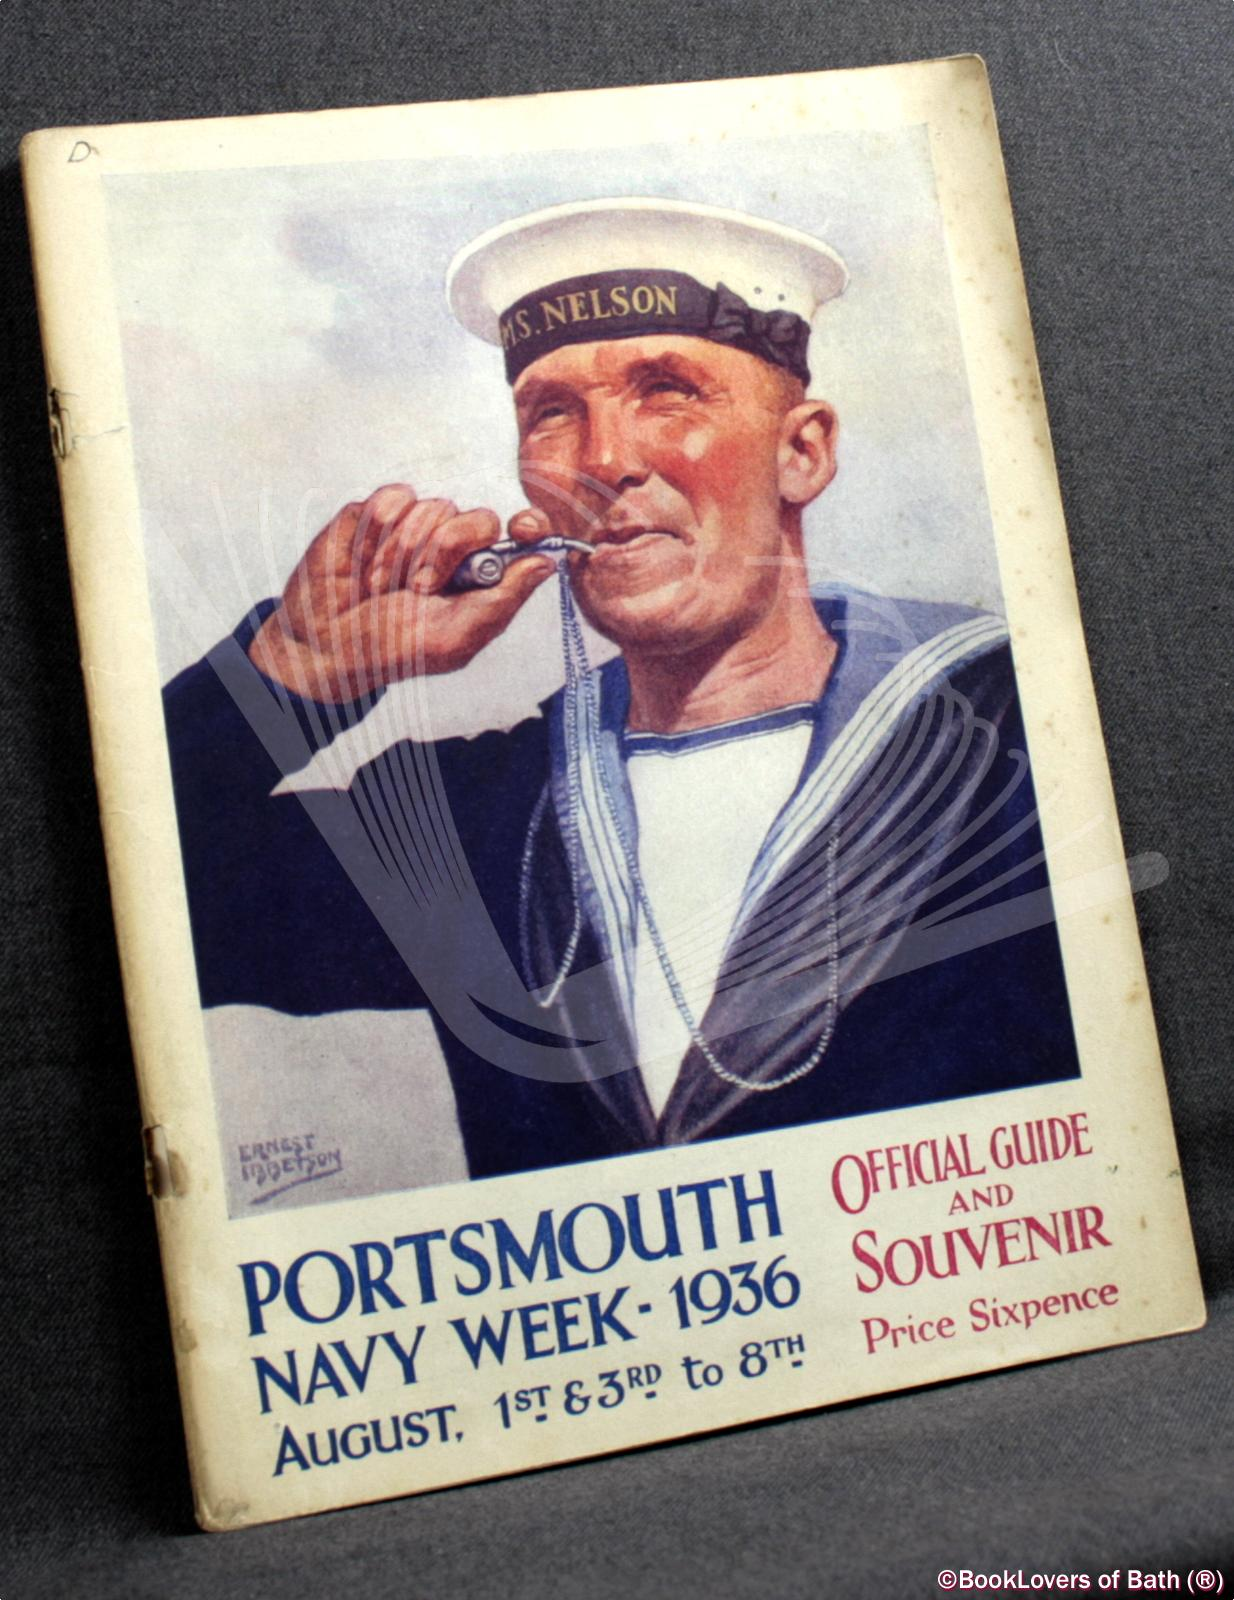 Portsmouth Navy Week August 1st & 3rd to 8th, 1936 Official Illustrated Guide and Souvenir - Anon.